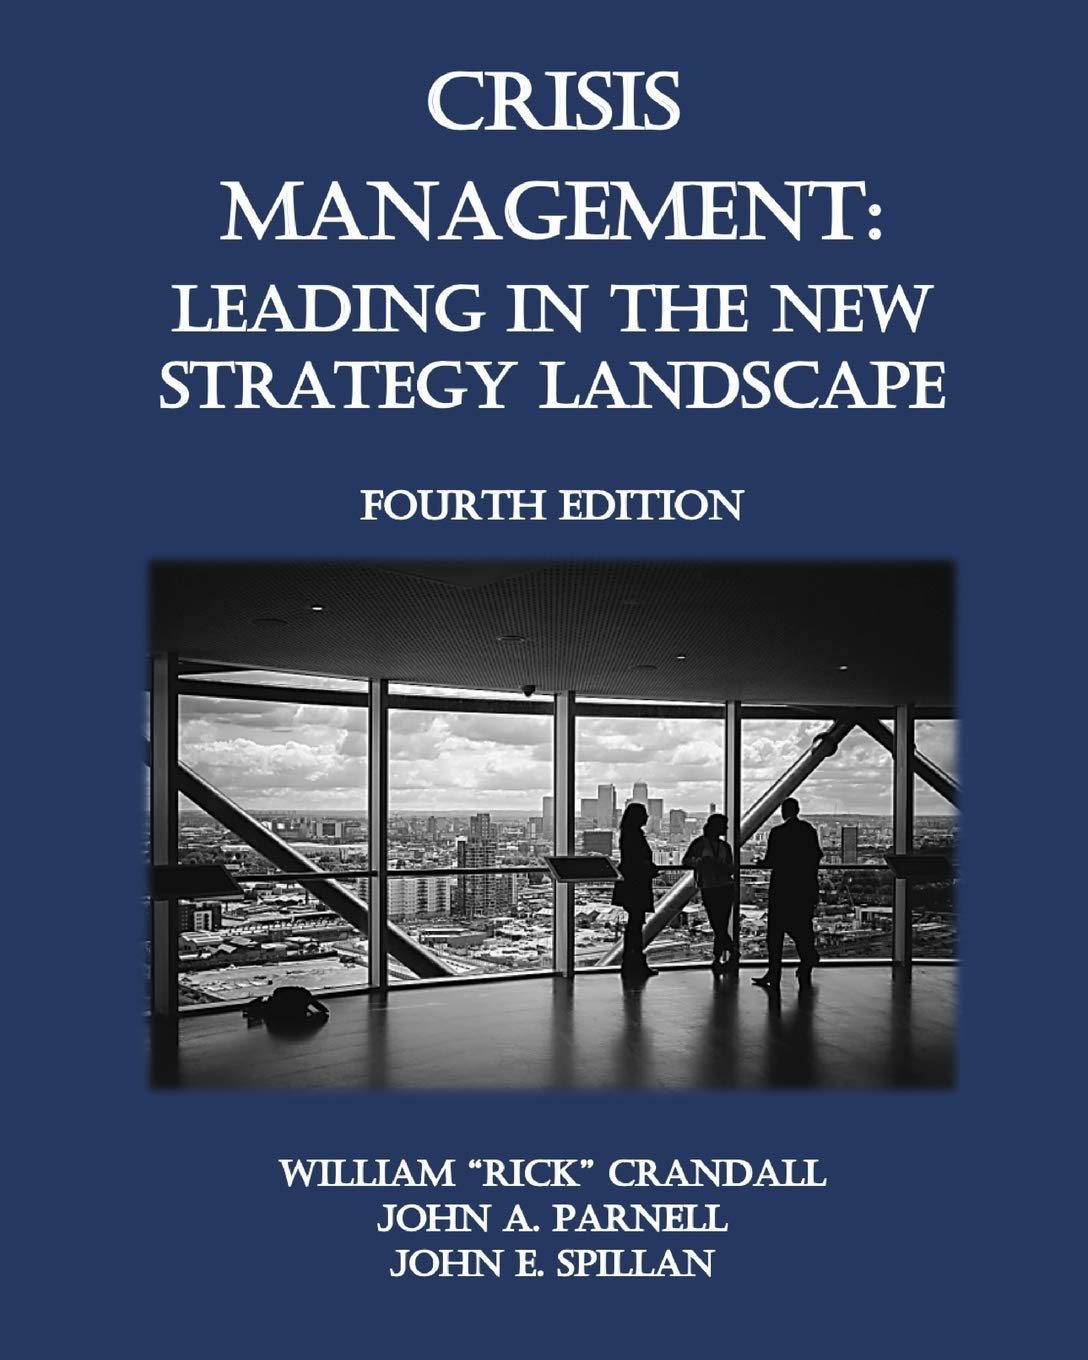 Book Cover-Crisis Management: Leading in the New Strategy Landscape by William Rick Crandall PhD, John A. Parnell PhD, John E. Spillan PhD (2020)